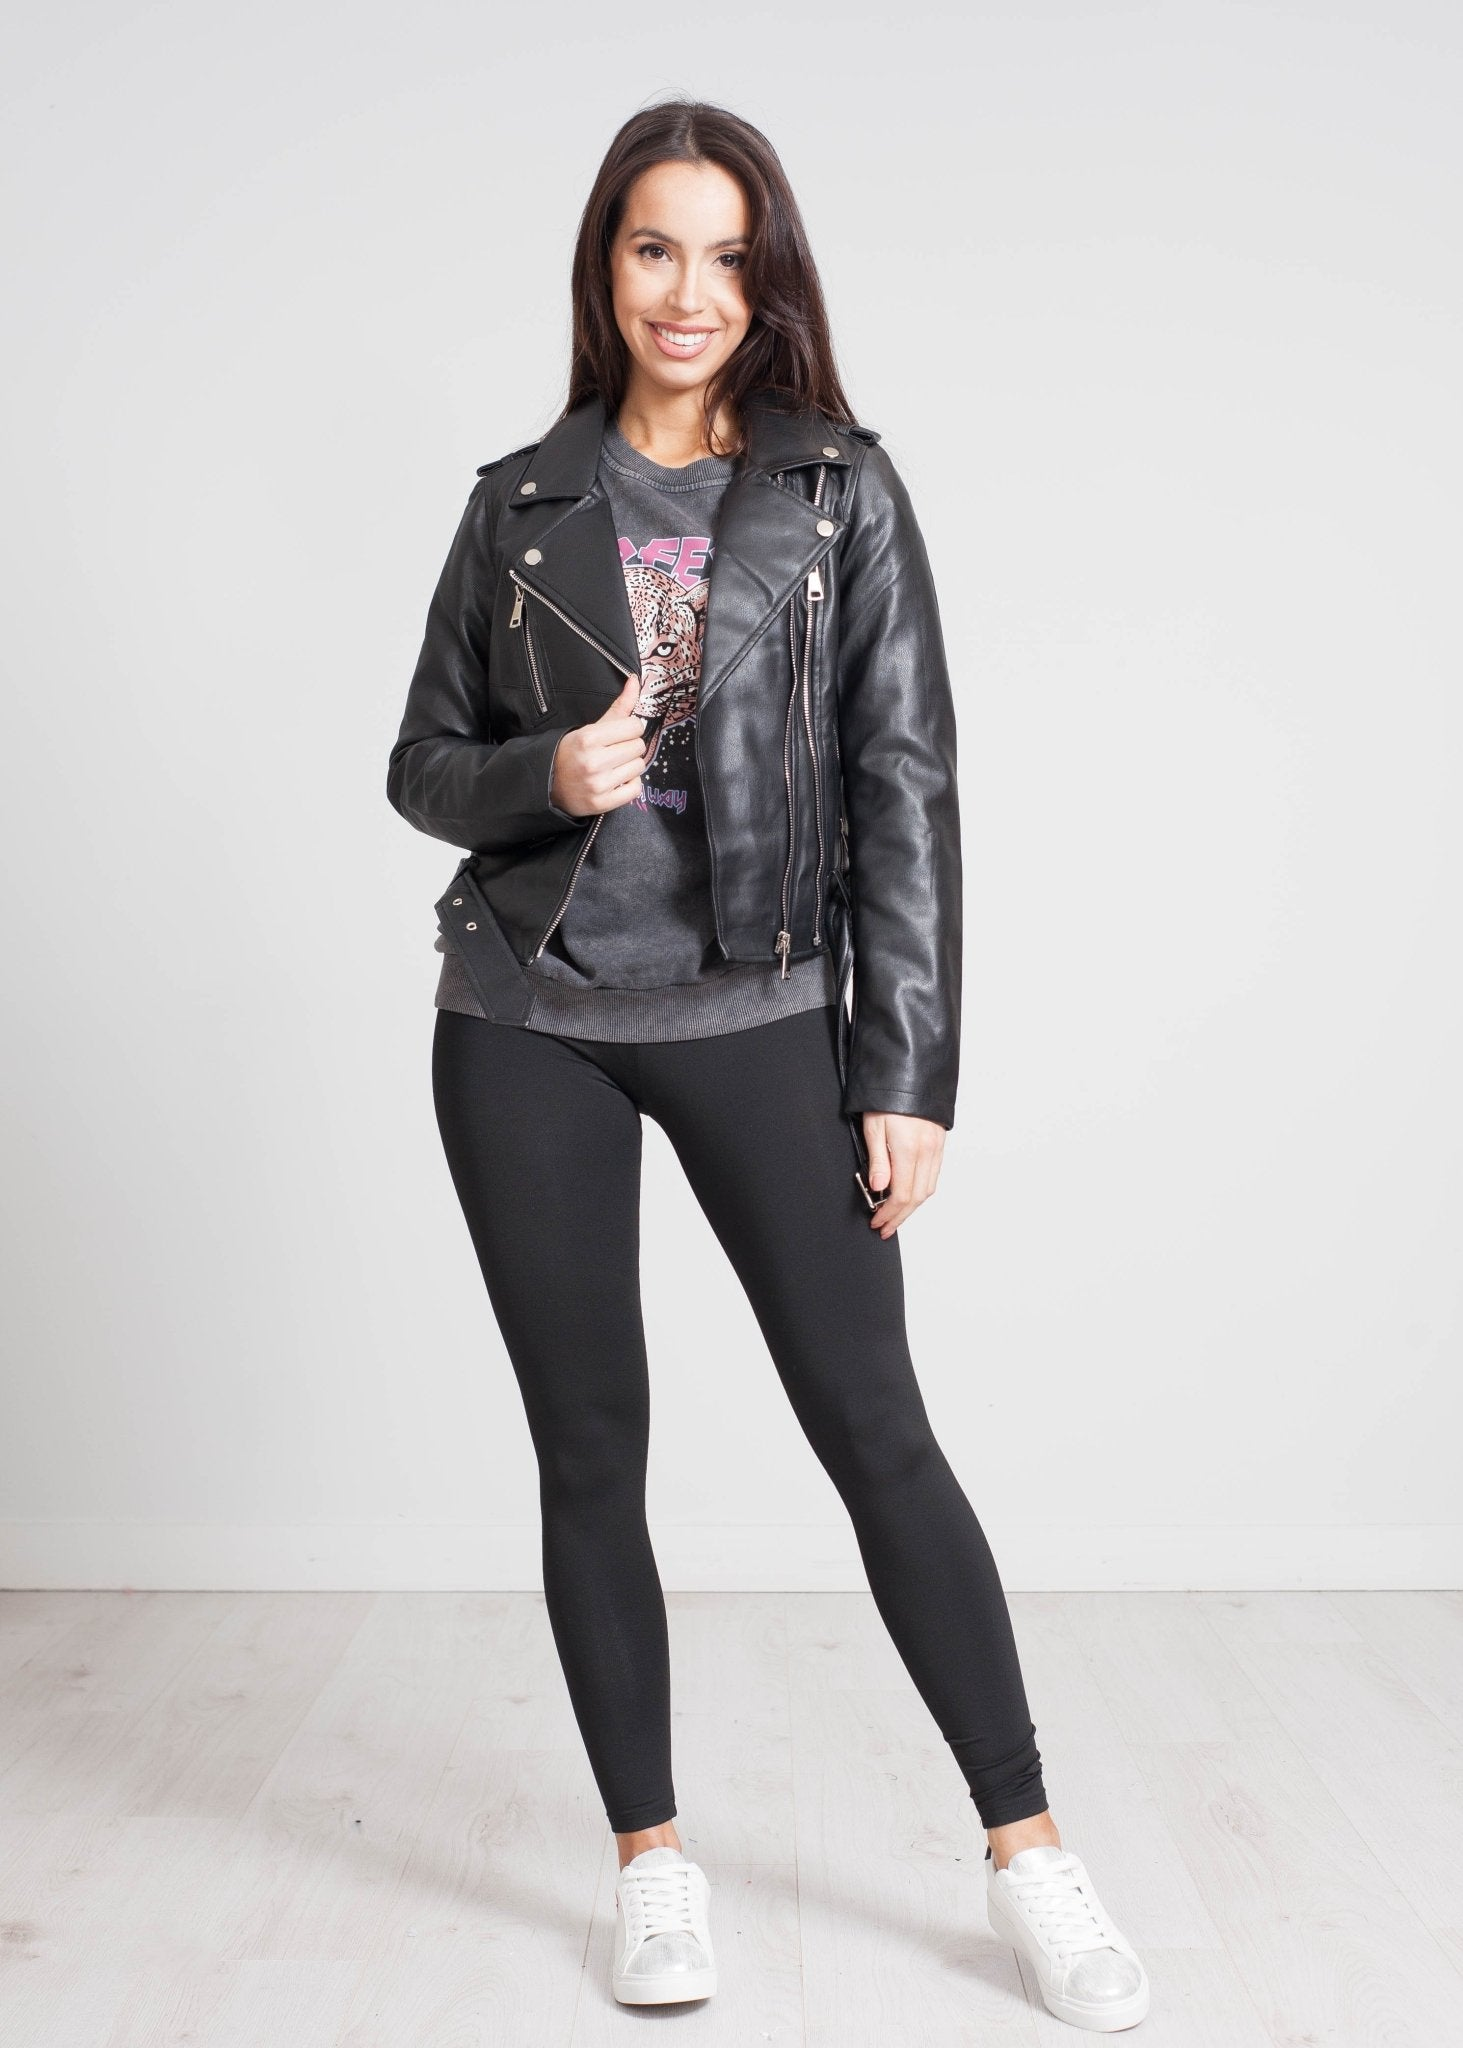 Caitlyn Belted Leather Jacket In Black - The Walk in Wardrobe